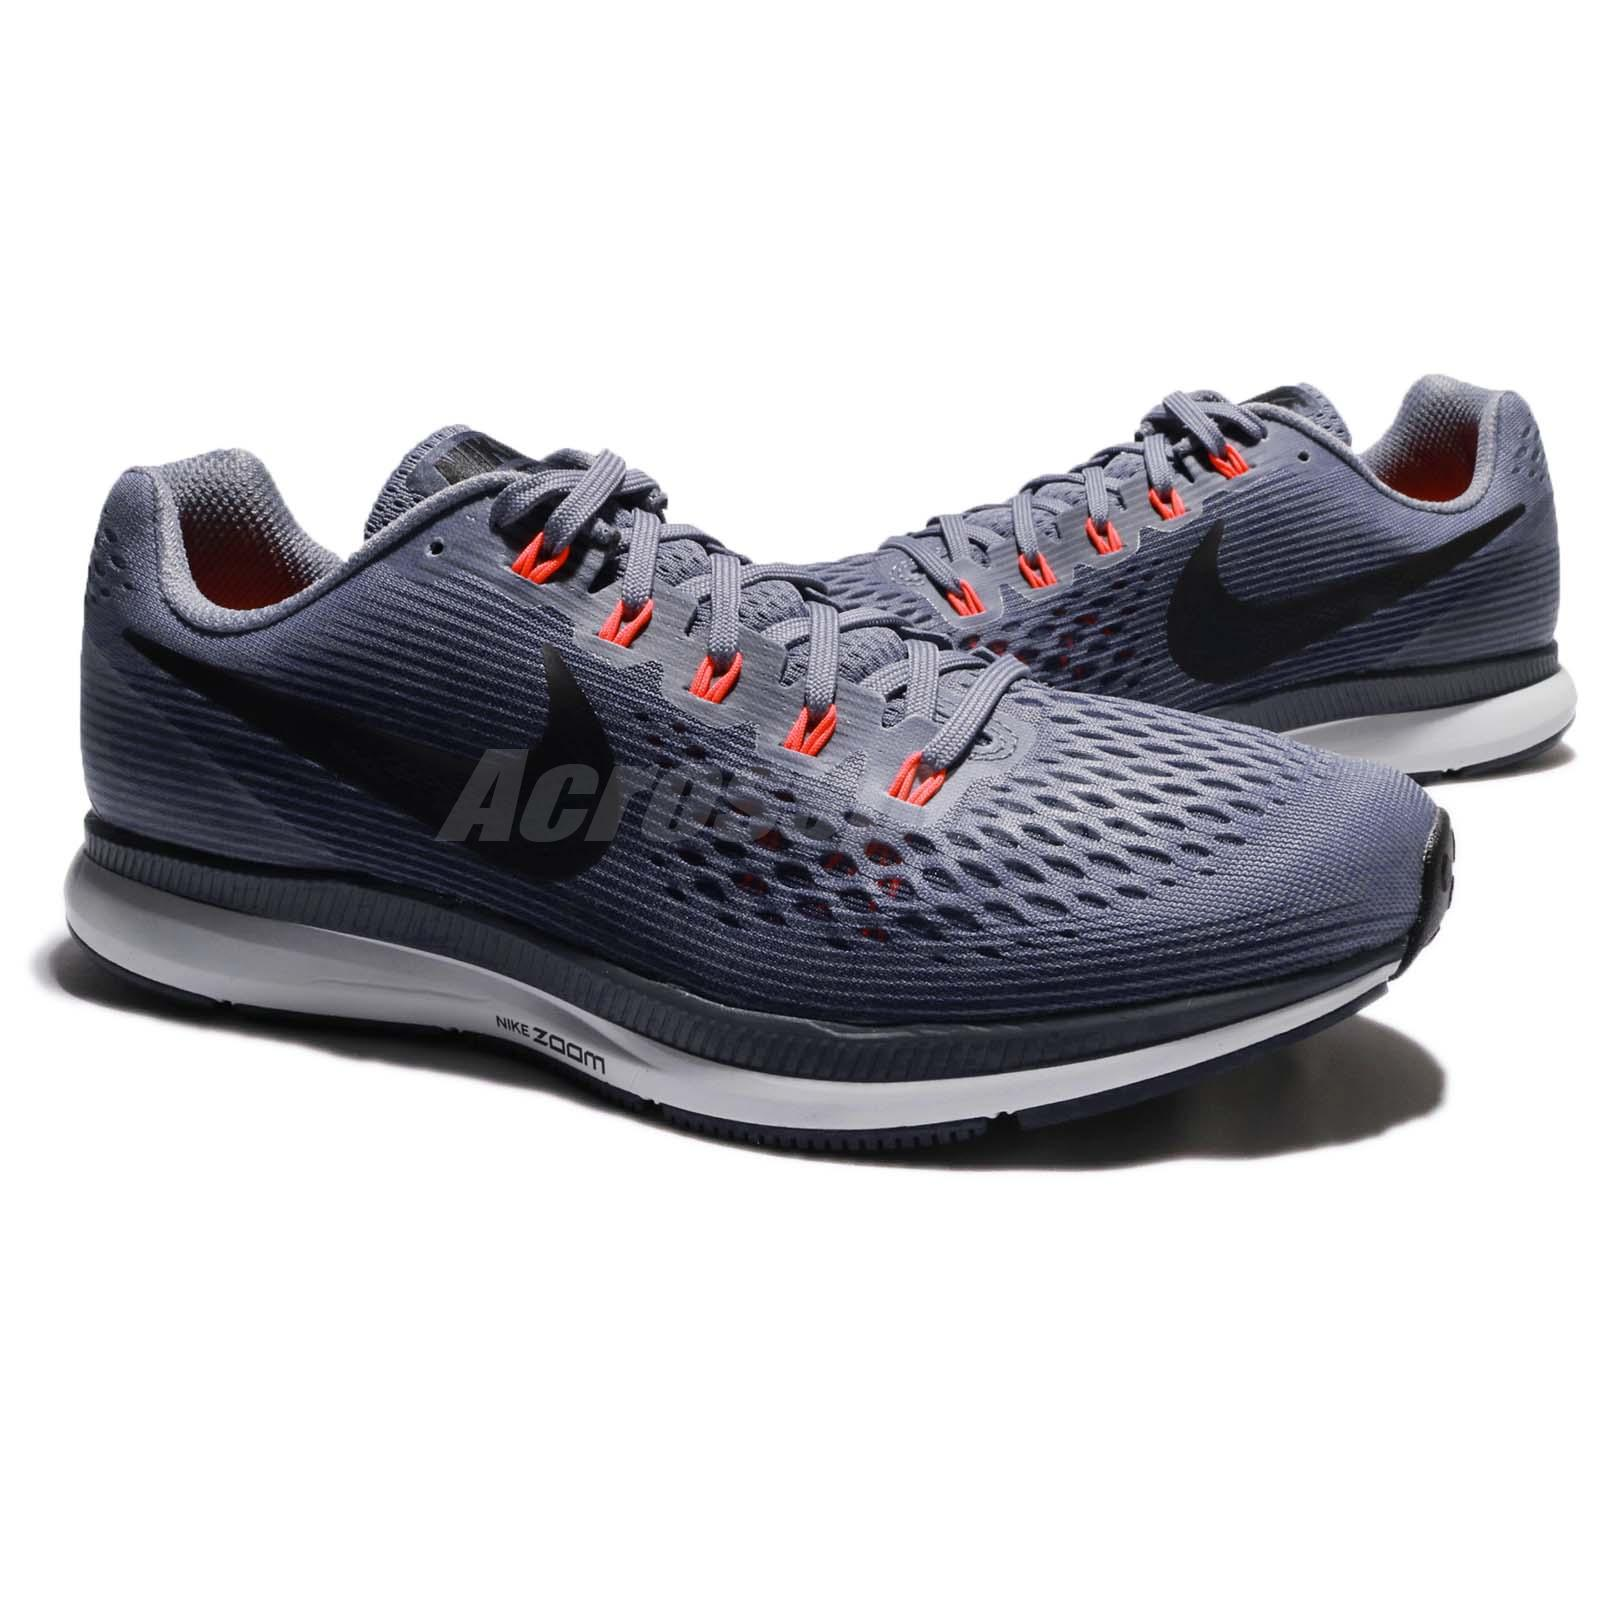 on sale d13a0 c6e9f ... discount nike air zoom pegasus 34 dark sky blue obsidian men running  f1bf0 7e56c ...